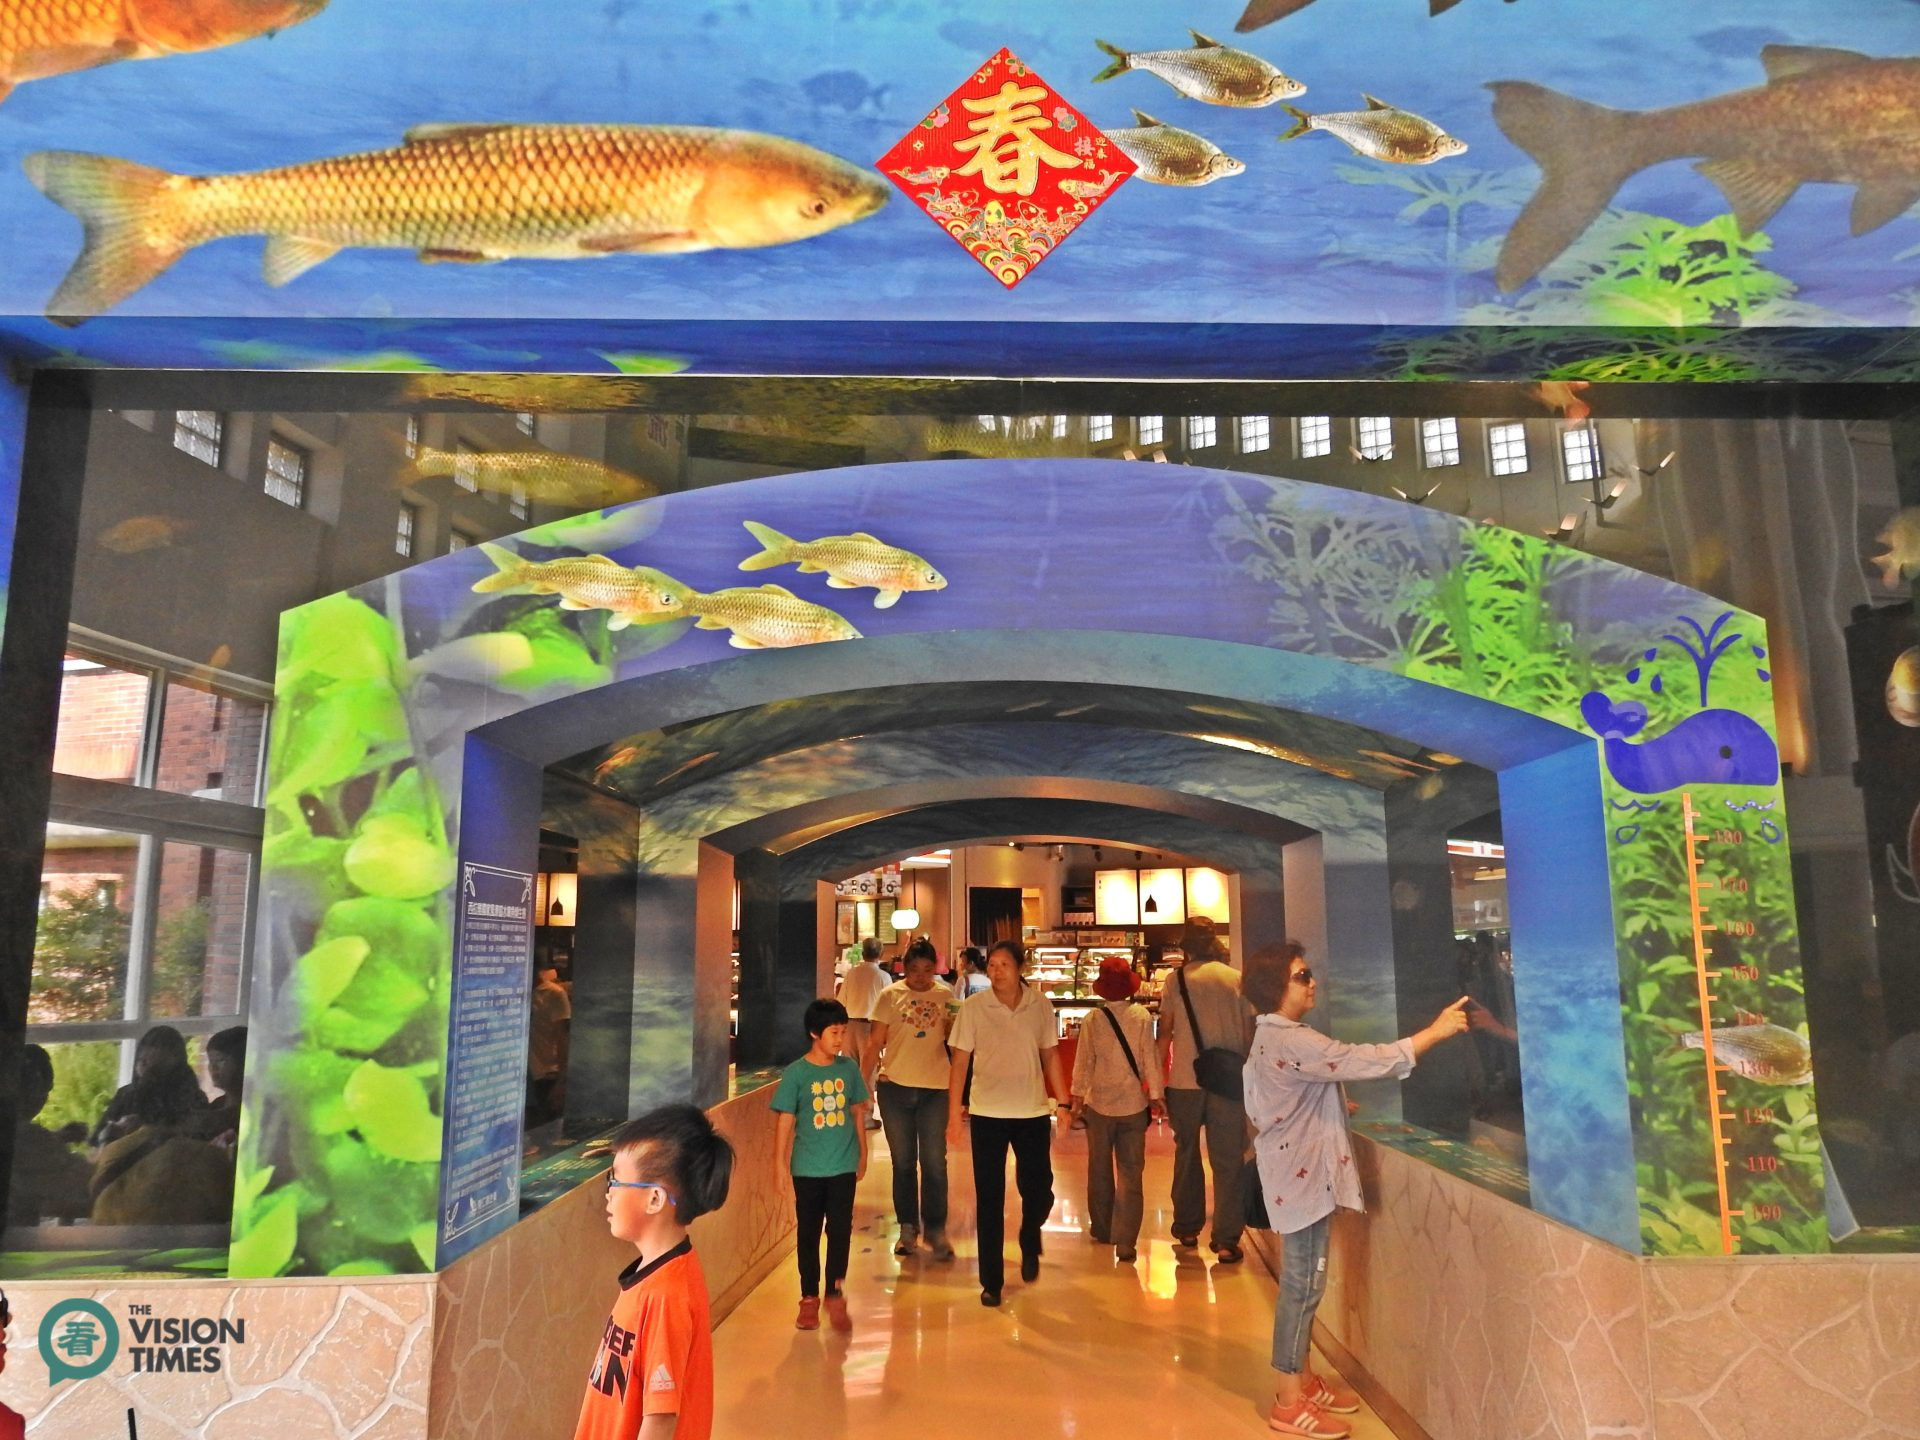 A 6-meter aquarium at the Dongshan Service Area. (Image: Billy Shyu / Vision Times)